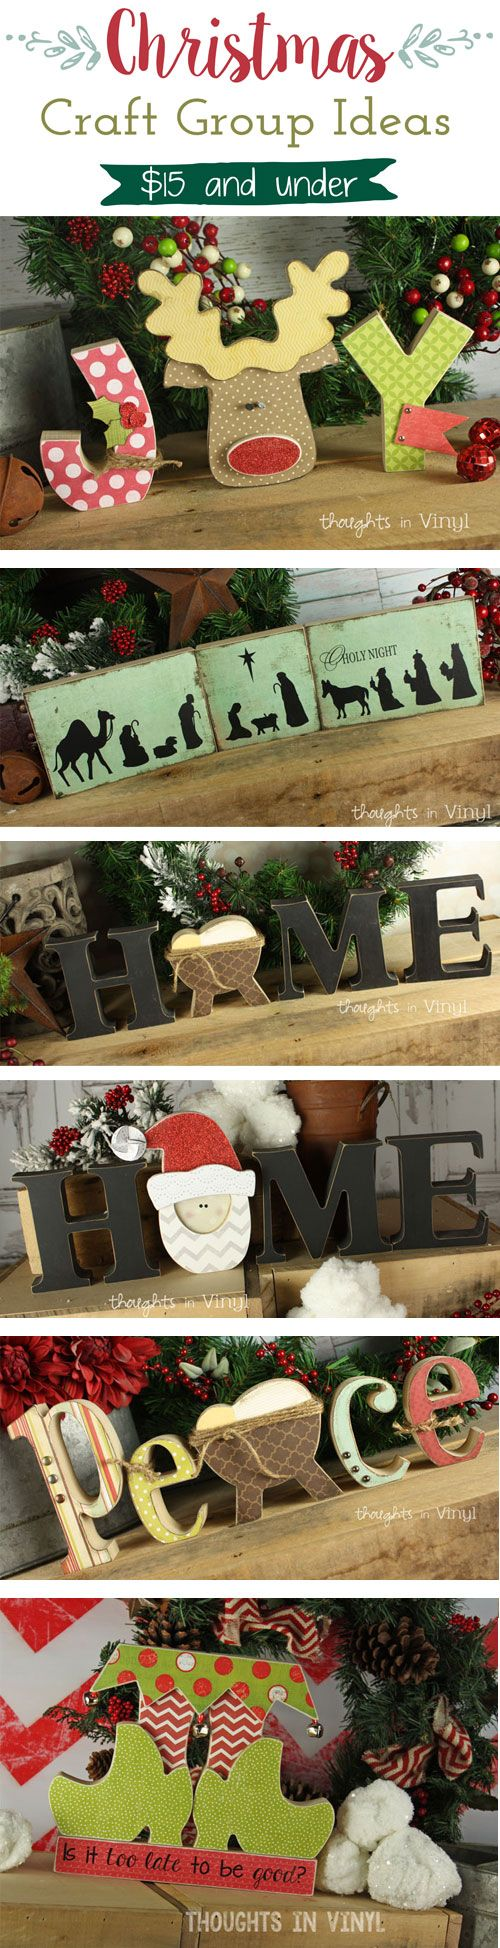 Christmas Crafts Wooden Letters Great Craft Group Ideas Or Gifts